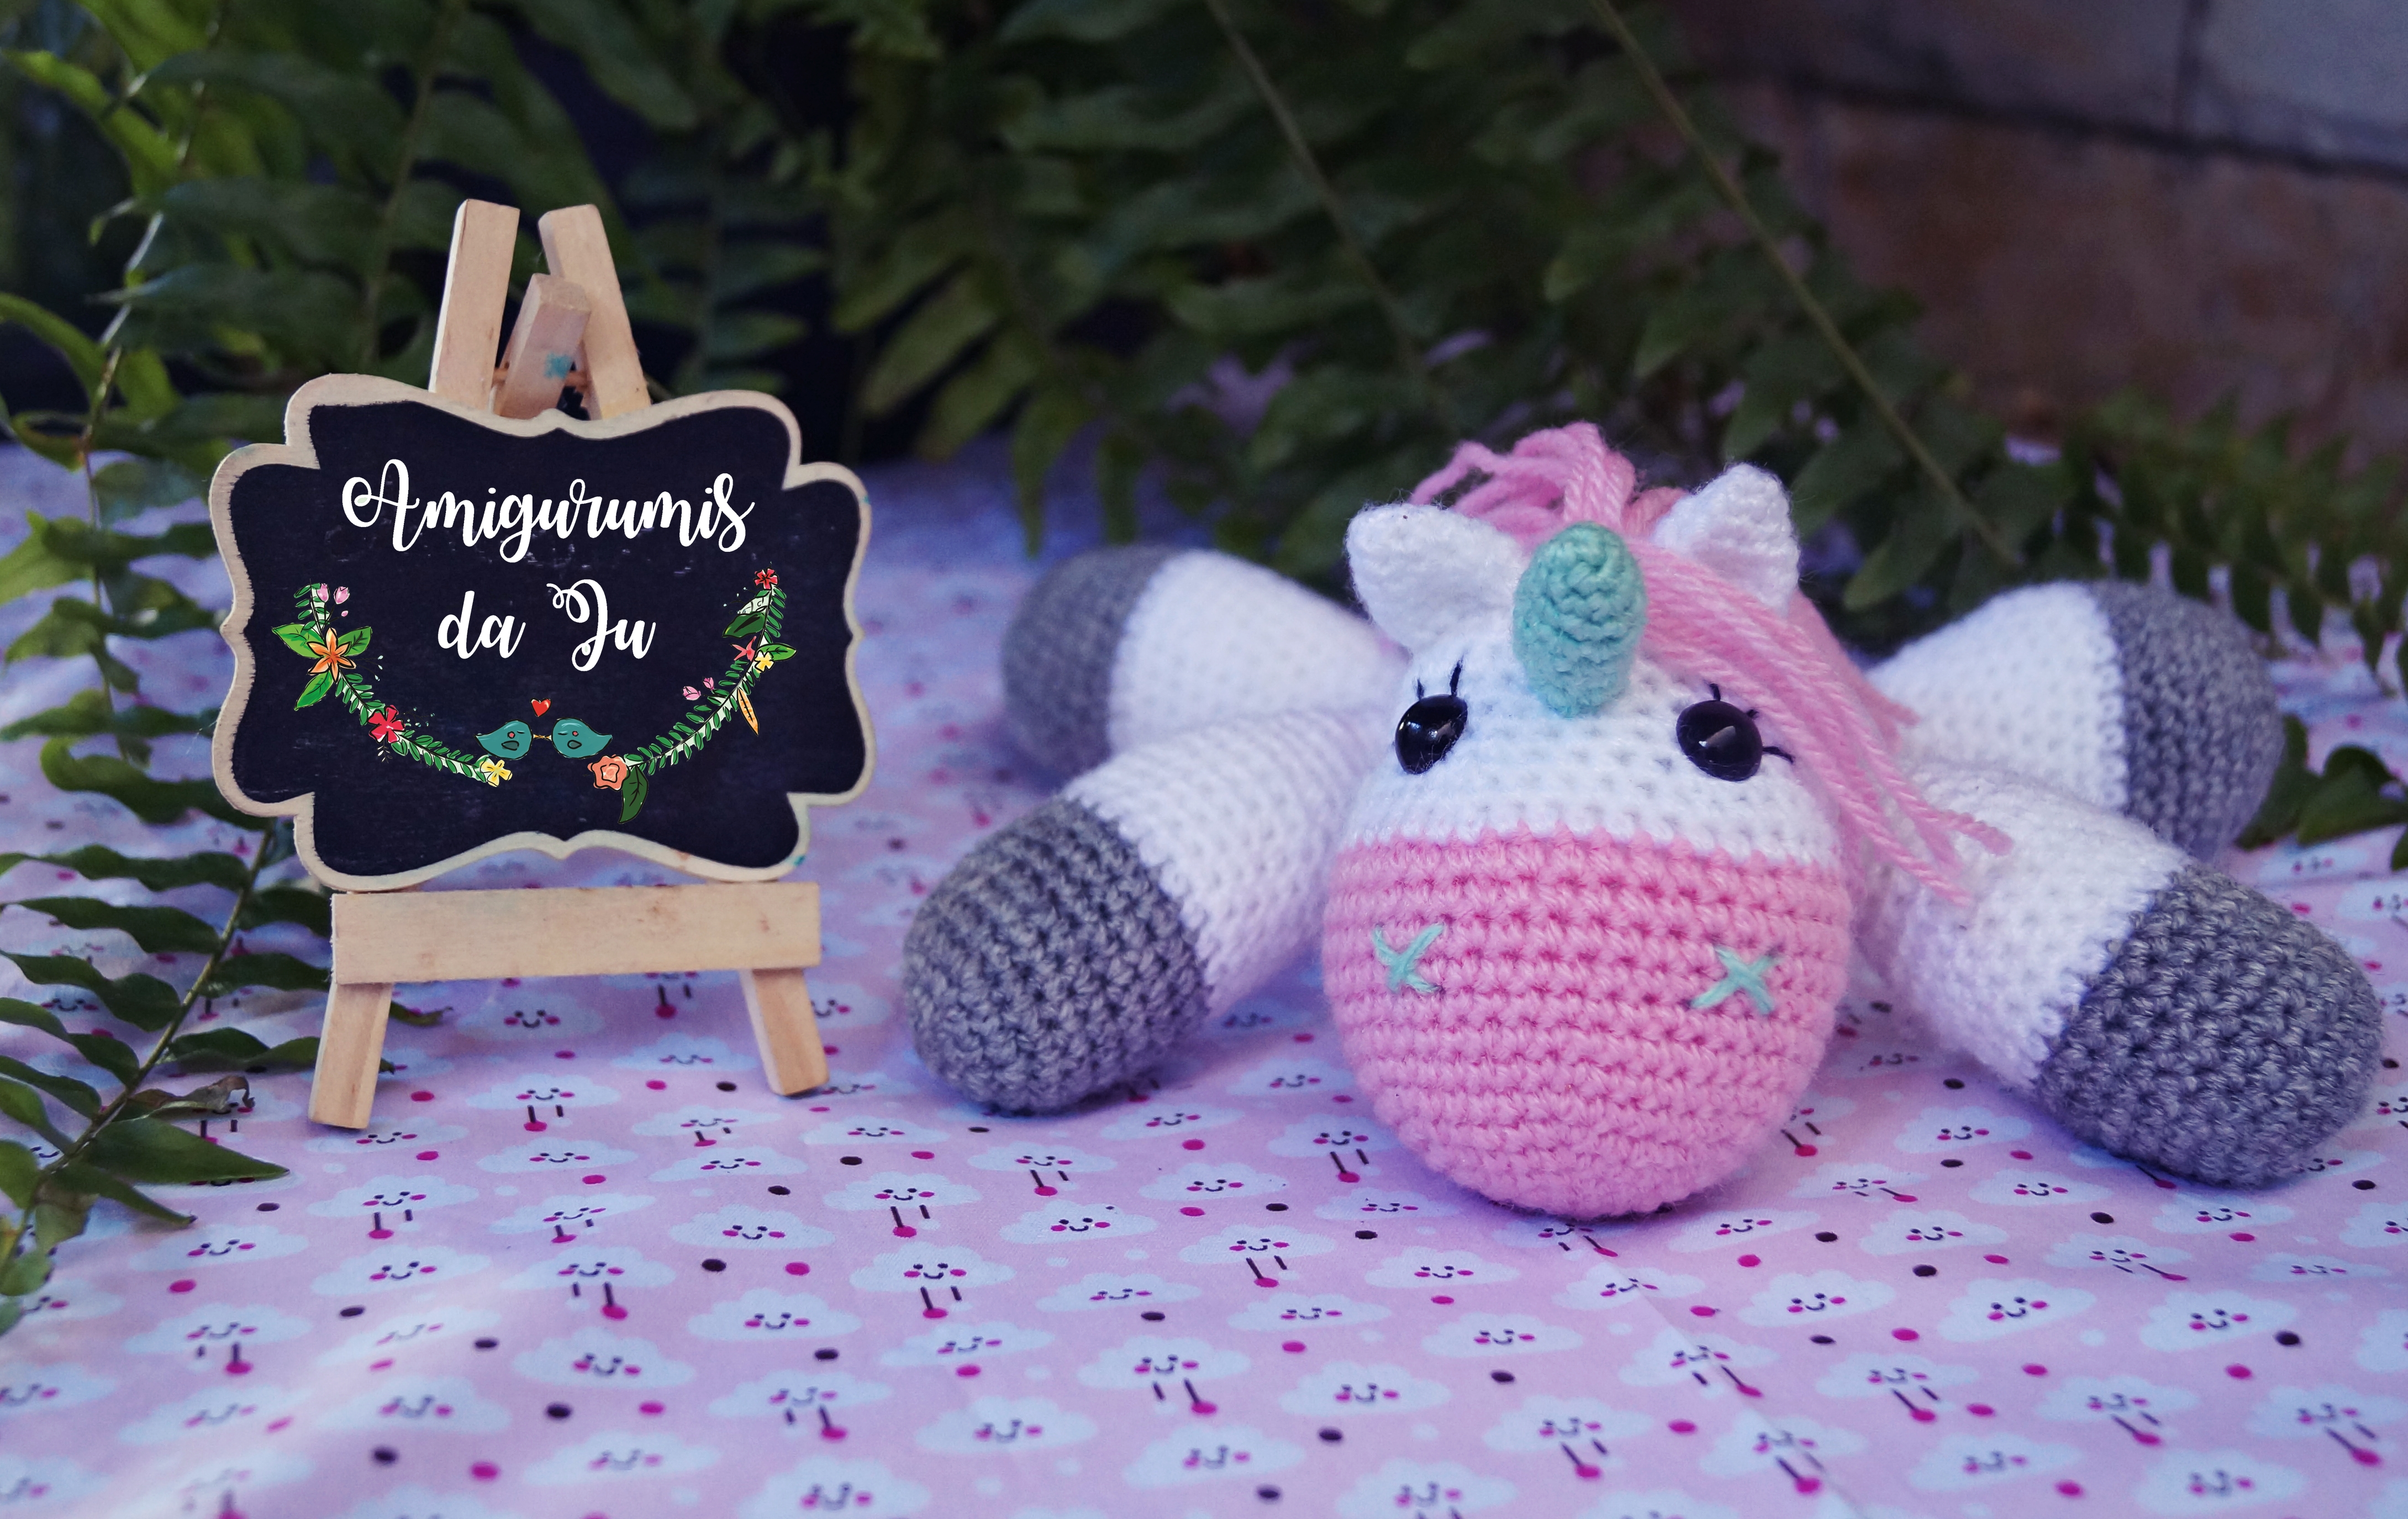 Baby Unicorn Free Amigurumi Pattern & Video Tutorial - Sueños ... | 2750x4359